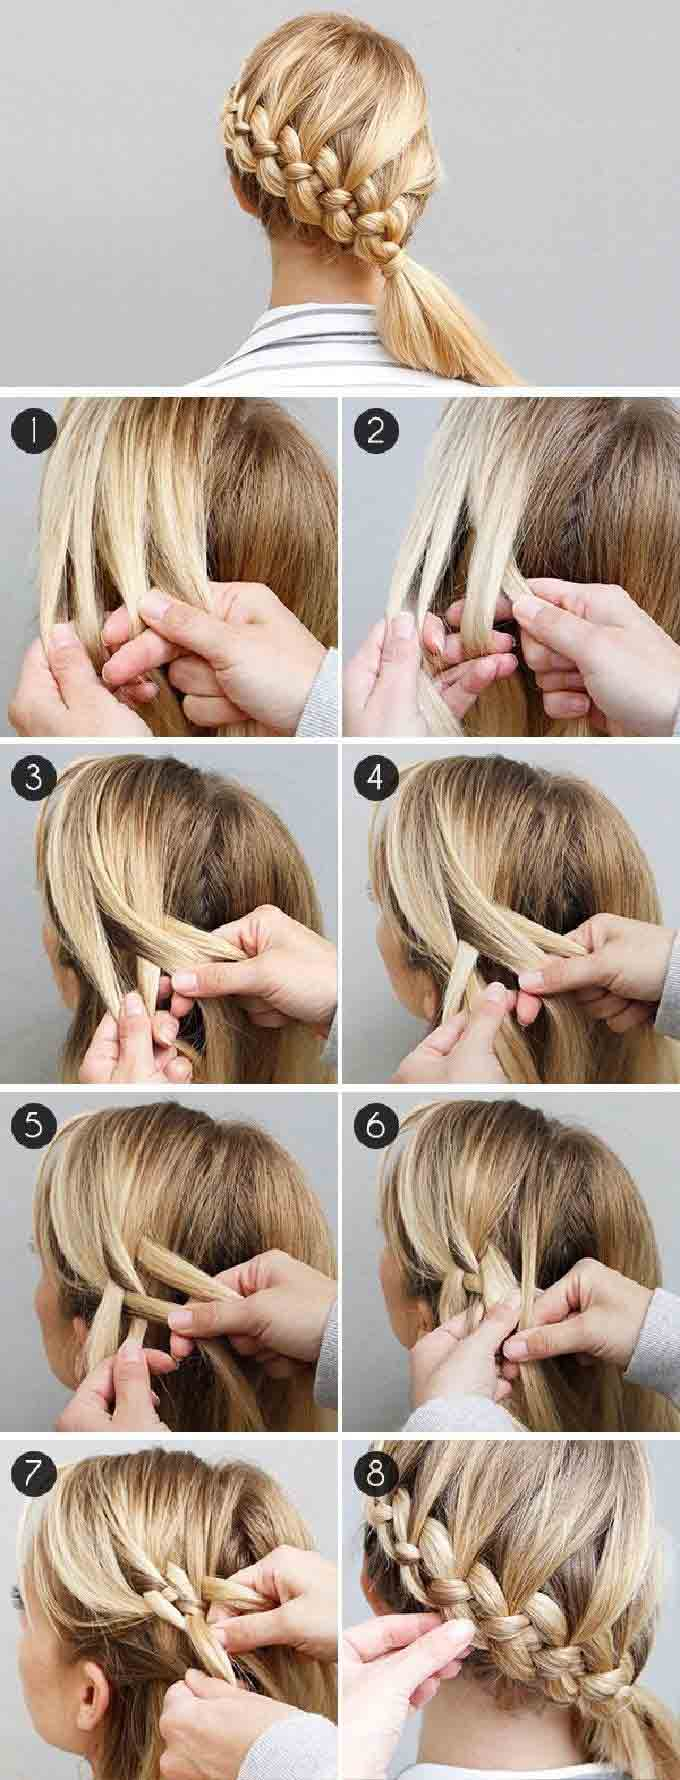 Christmas dutch braid tutorial step by step